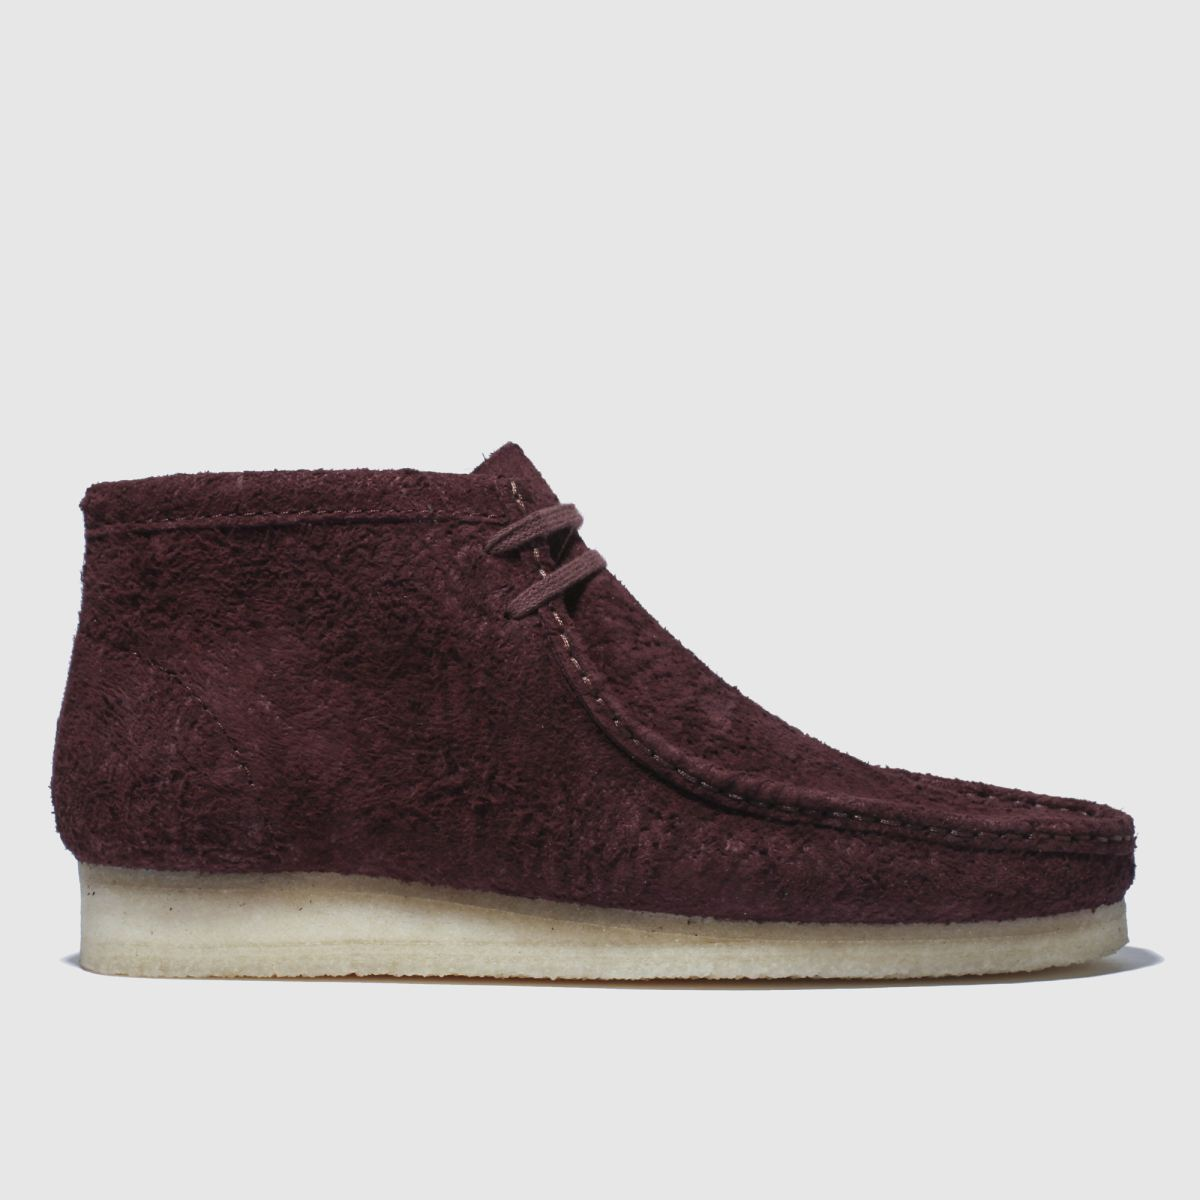 Clarks Originals Burgundy Wallabee Boots